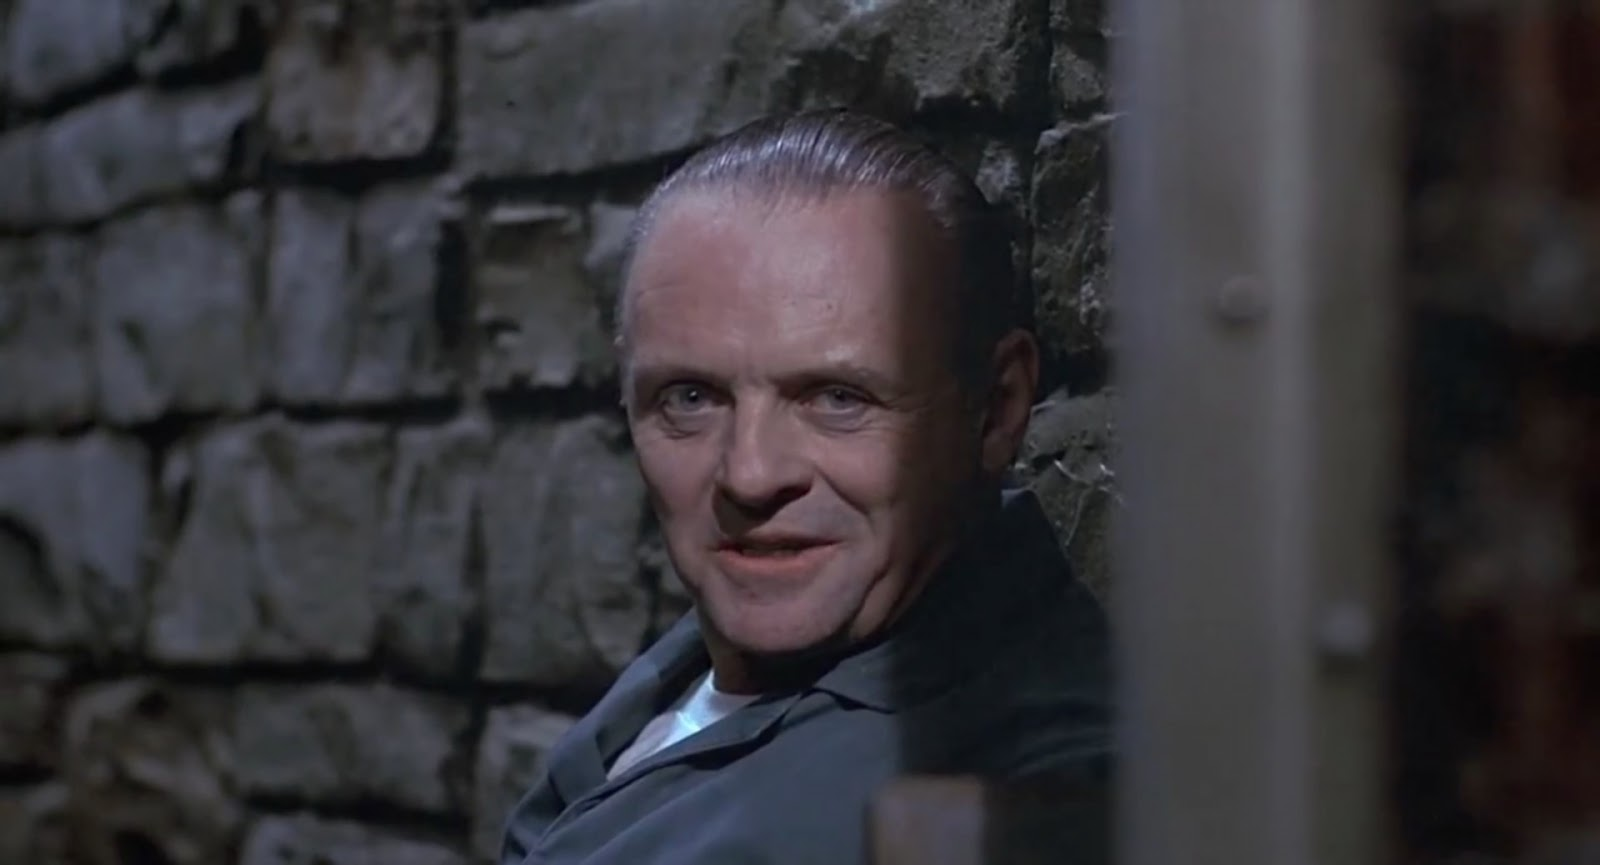 a critique of anthony hopkins as hannibal lector in silence of the lambs The silence of the lambs is based on thomas harris' 1988 novel of the same name and is the second film to feature the character hannibal lecter following the 1986 film manhunter prior to the novel's release, orion pictures partnered with gene hackman to bring the novel to the big screen.